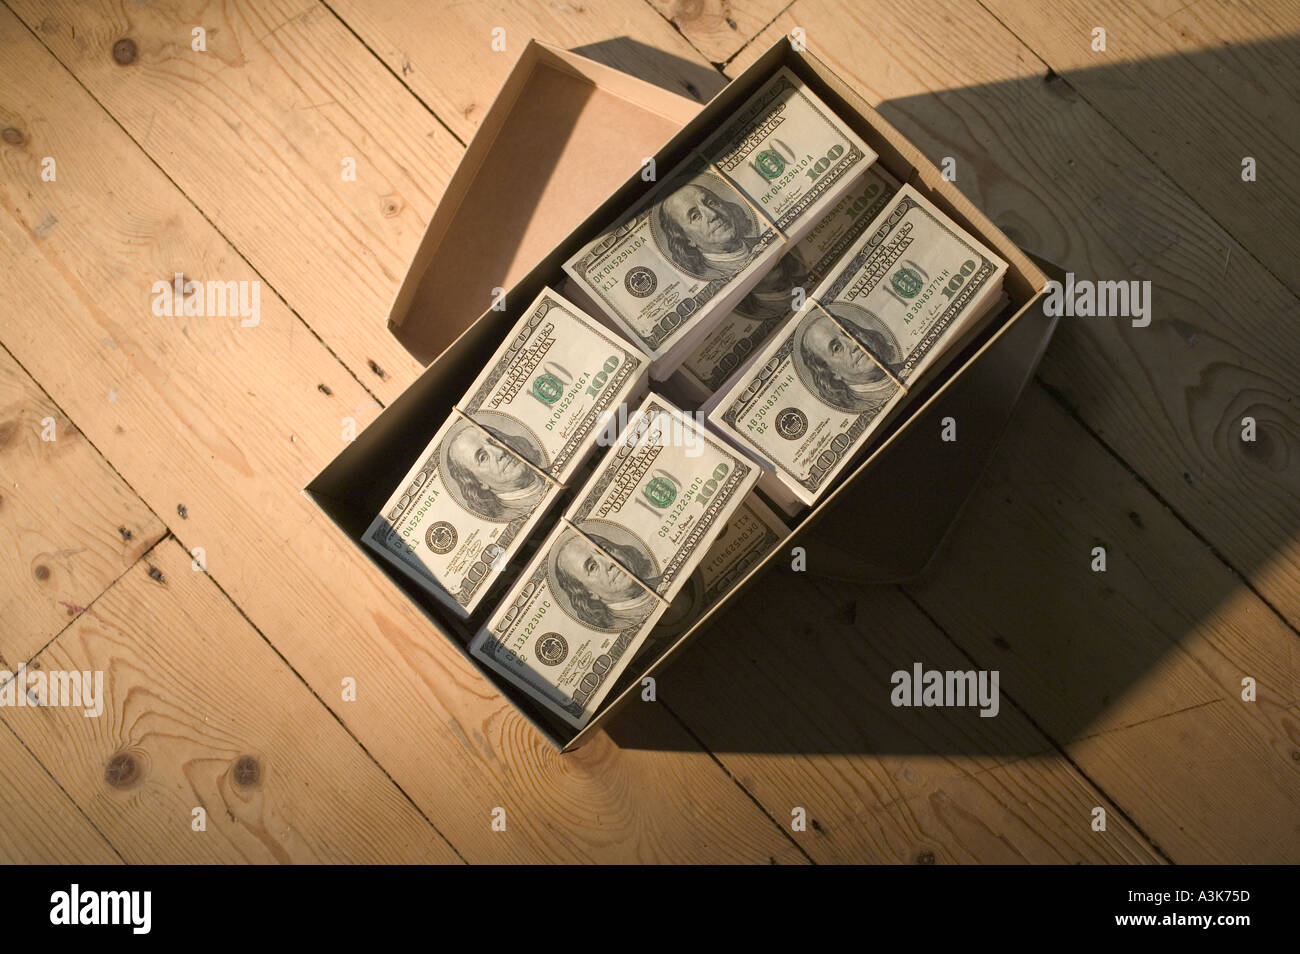 Shoebox Full Of Money.Stolen Cash Stock Photos Stolen Cash Stock Images Alamy